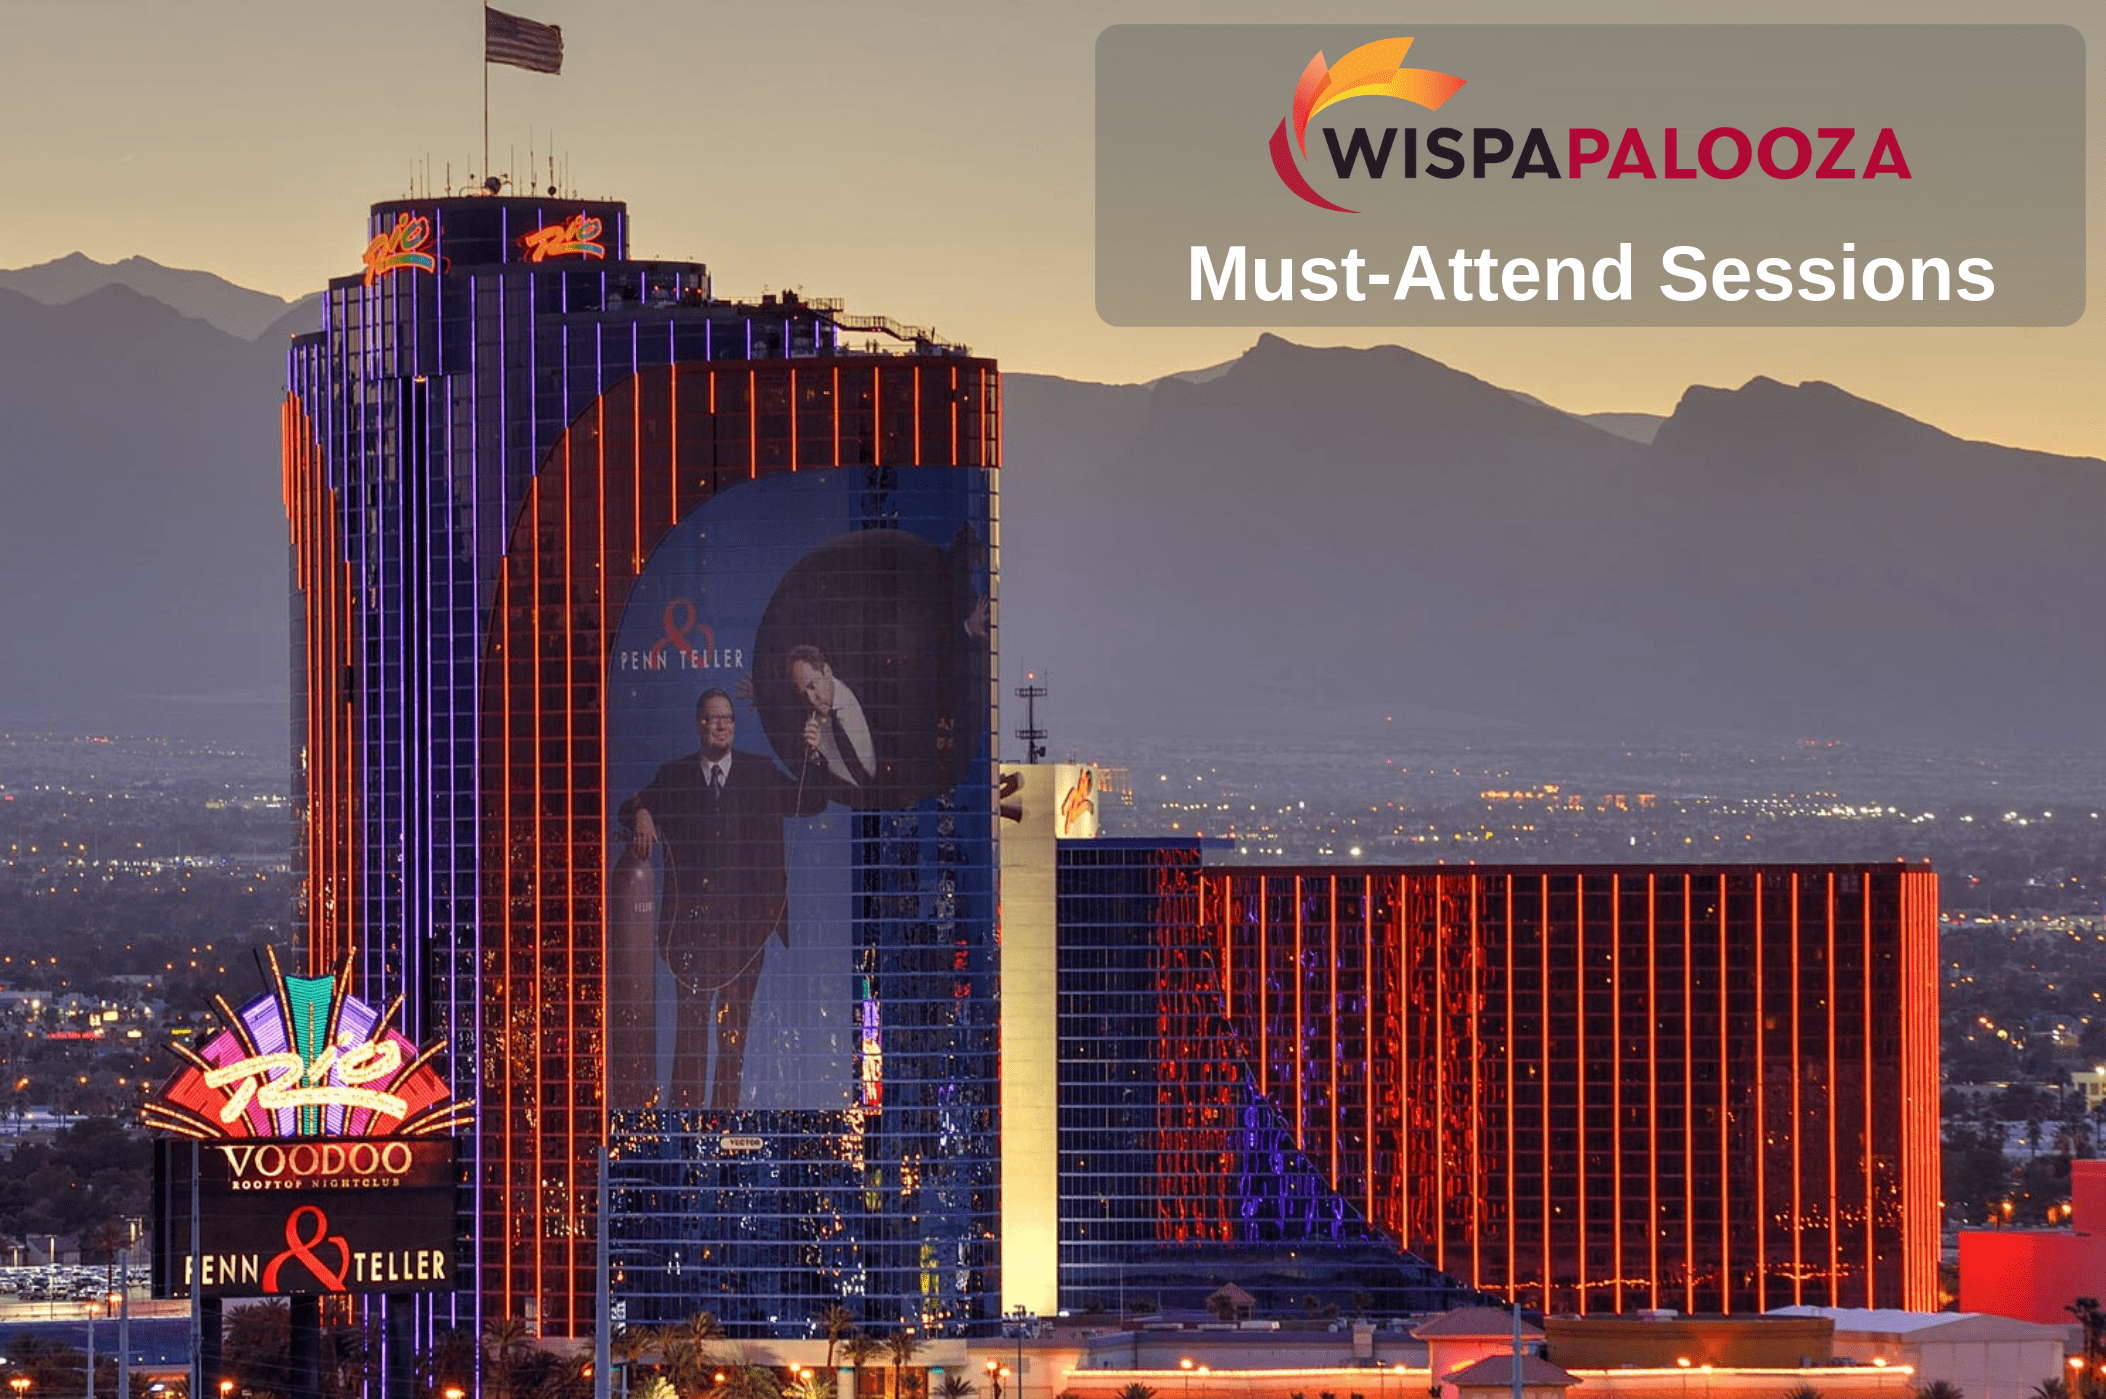 WISPAPALOOZA 2018, Oct 8-12, 2018 – 5 Must-Attend Sessions